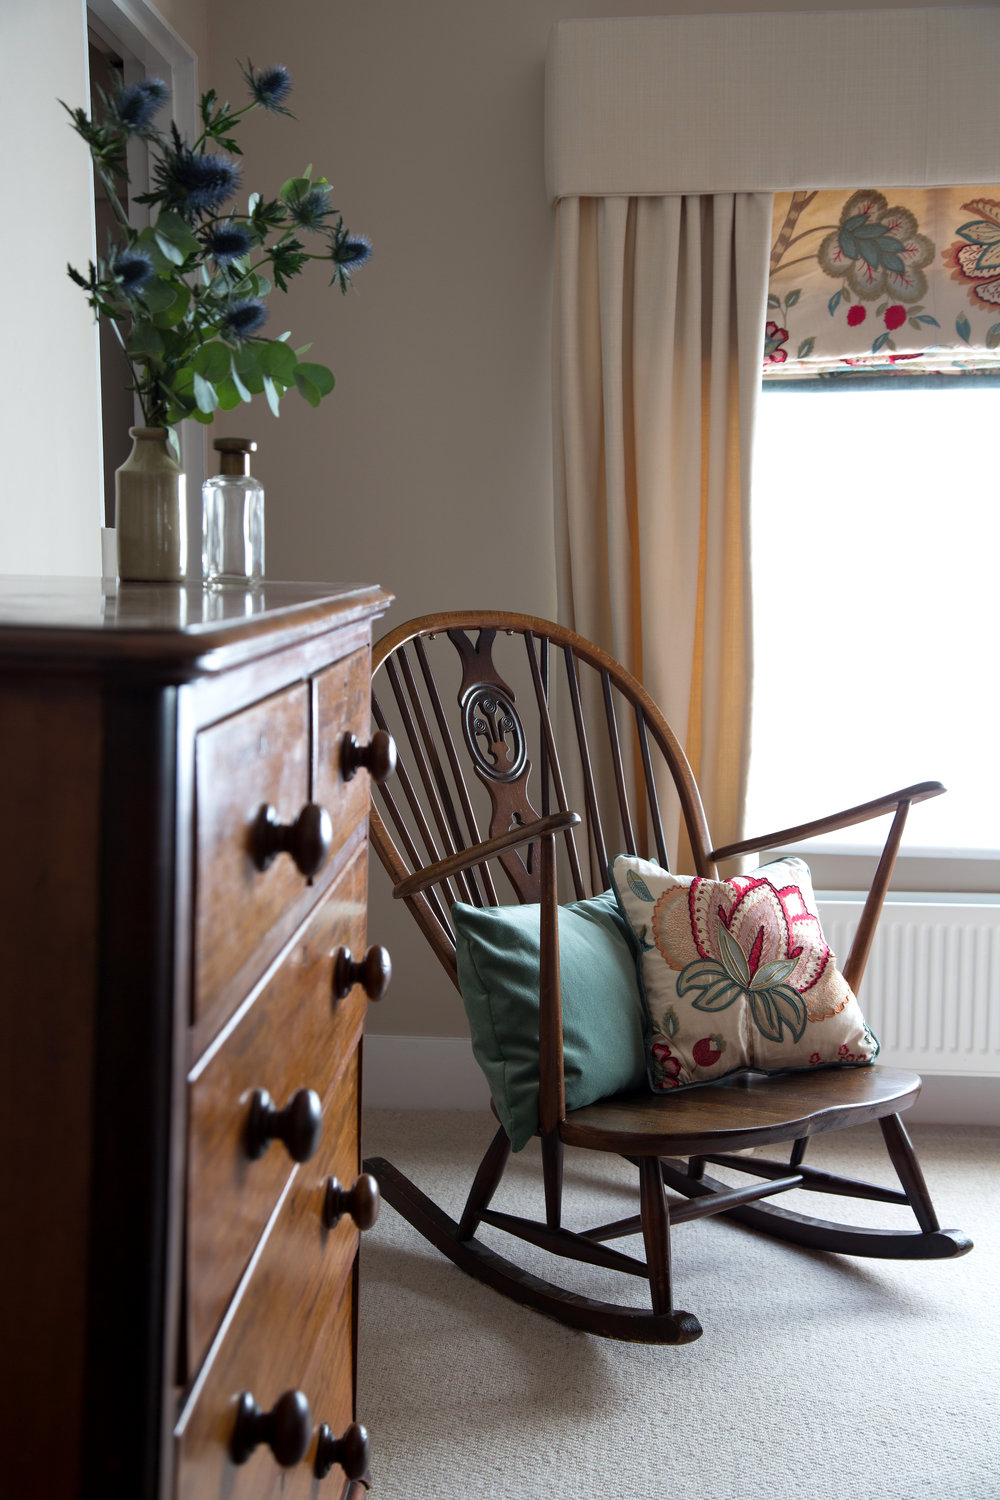 An Elegant Wooden Rocking Chair in a Grade II Listed Holiday Home in Battle East Sussex – Interior Design by Smartstyle Interiors